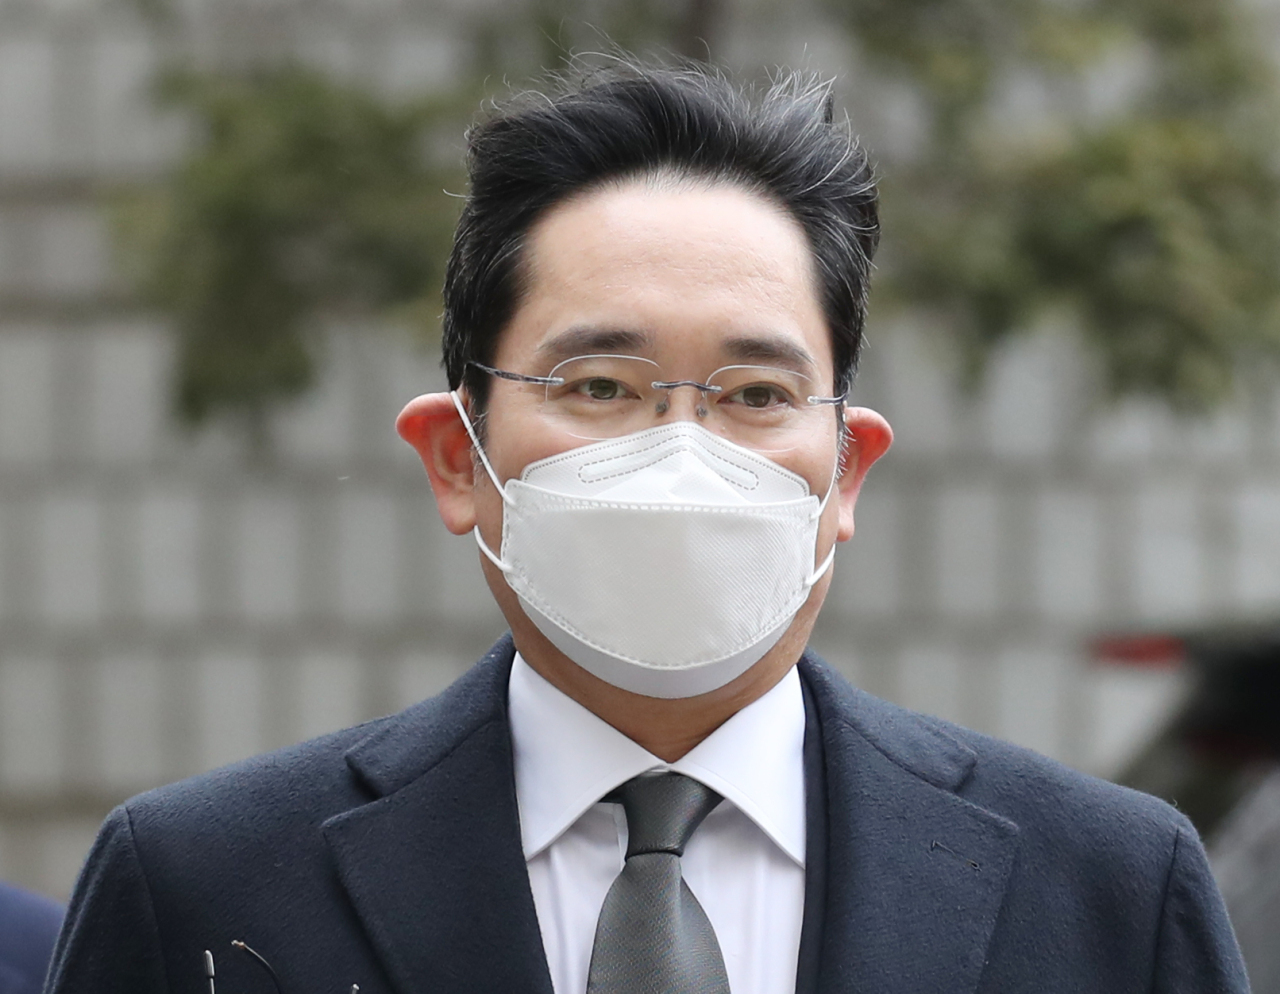 An image showing Samsung Electronics Vice Chairman Lee Jae-yong heading to court to attend a hearing at the Seoul High Court in Seocho-gu, credited to Yonhap News Agency